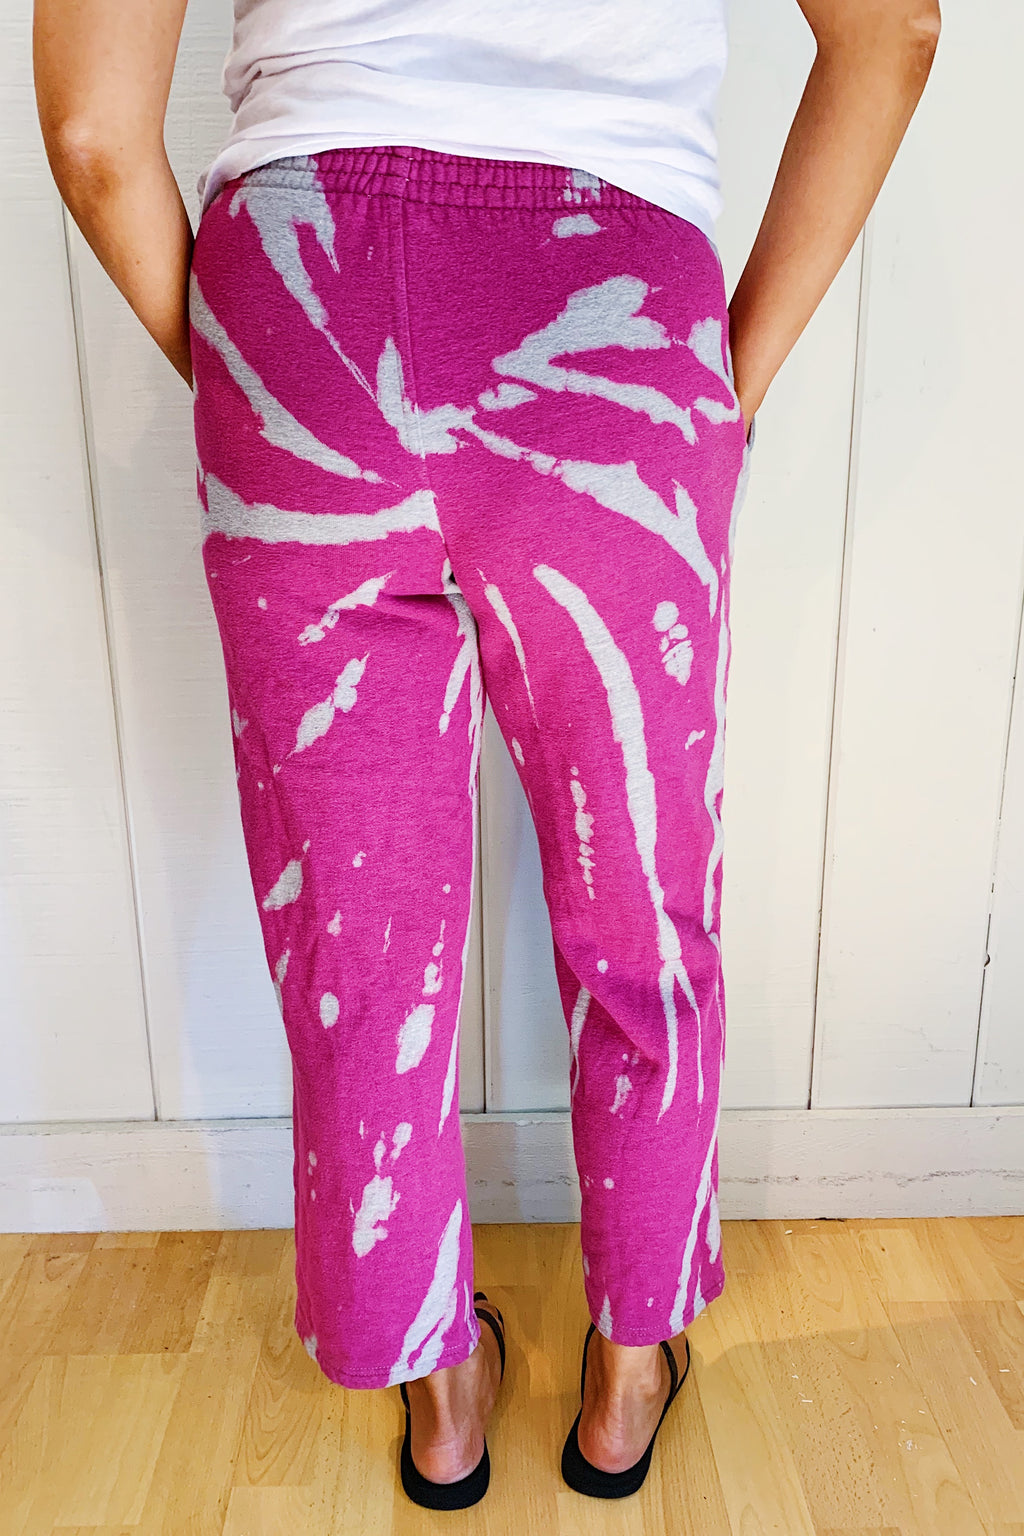 Unisex Upcycled One Of Kind Fuchsia Tie Dye Pants #22